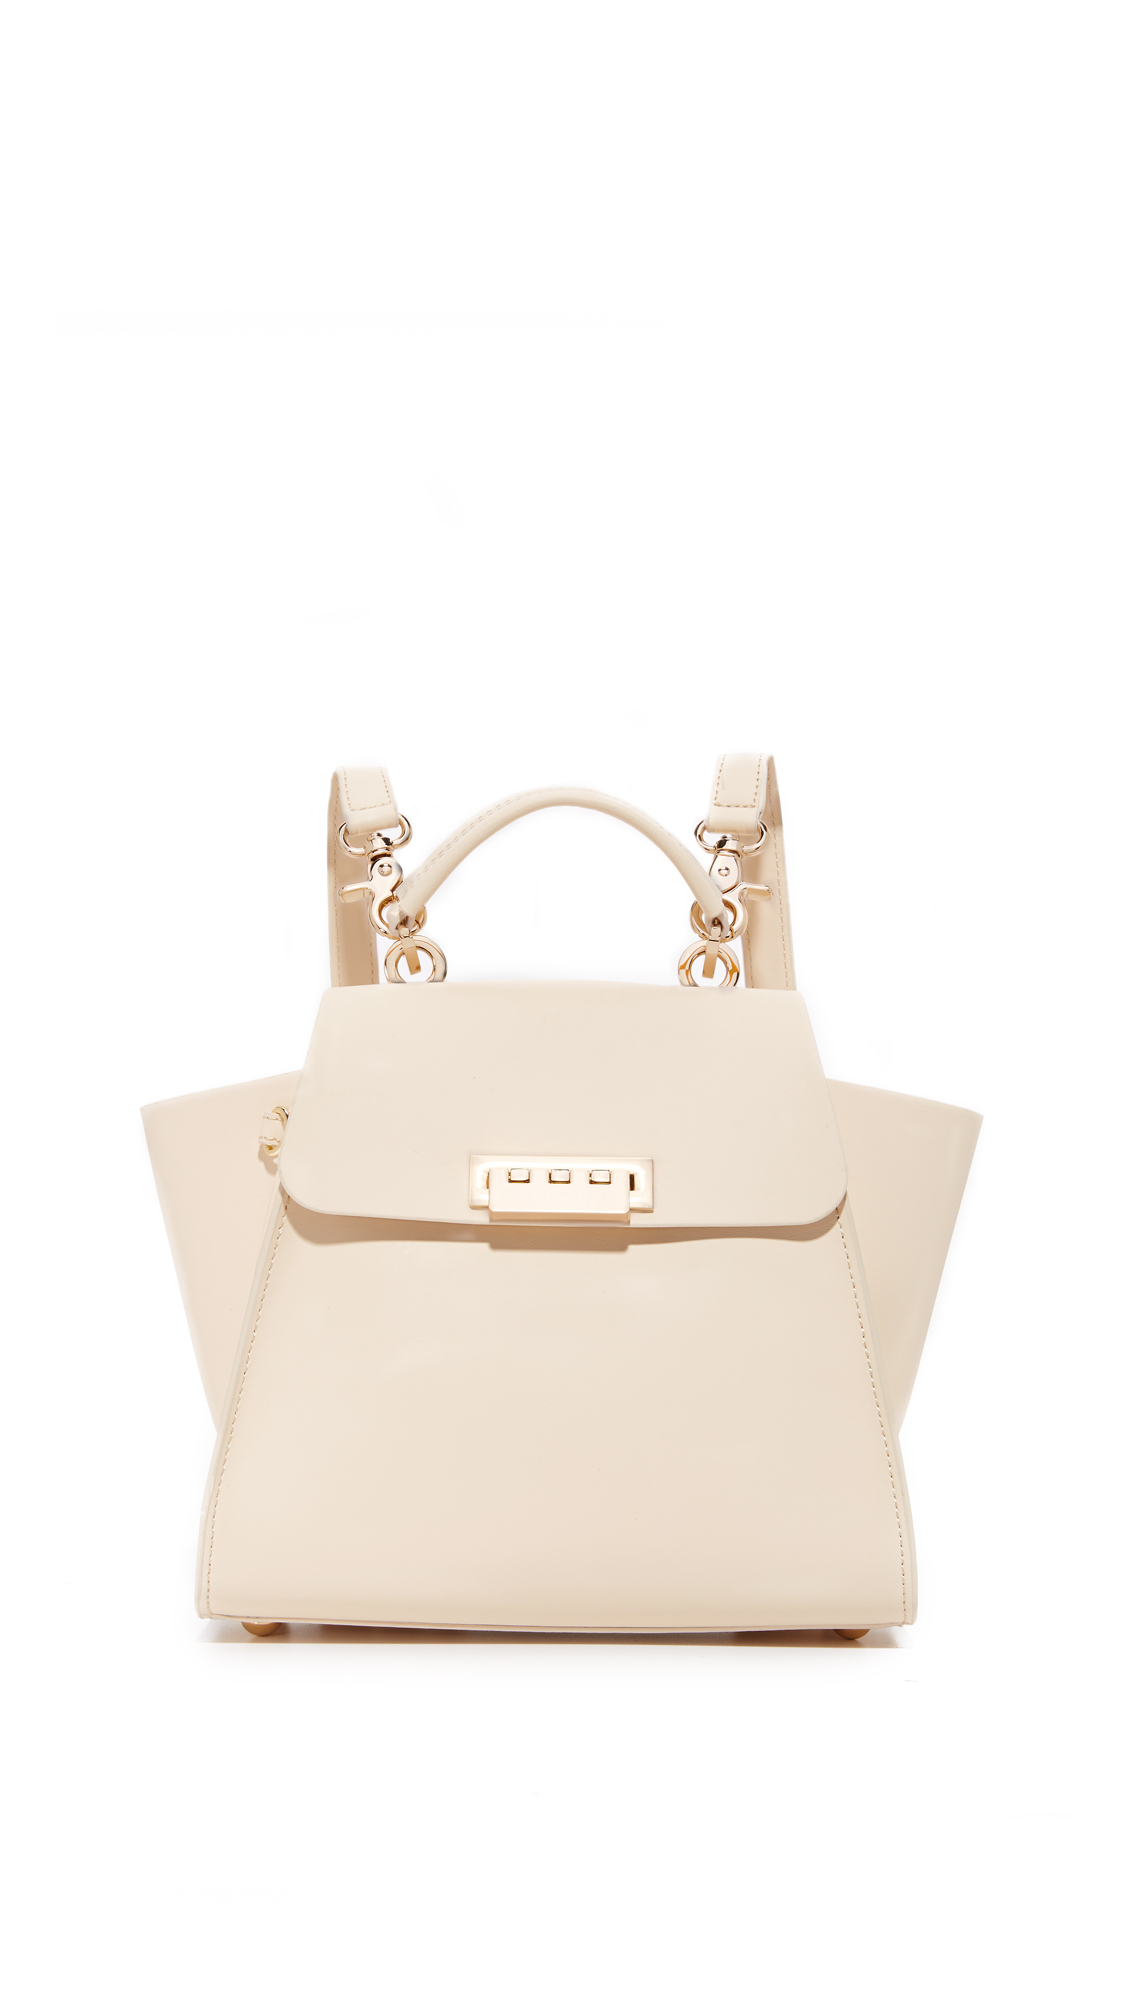 This structured ZAC Zac Posen bag can be carried as a shoulder bag or worn as a backpack. A turn lock fastens the top flap, which opens to a leather lined, 1 pocket interior. Top handle and